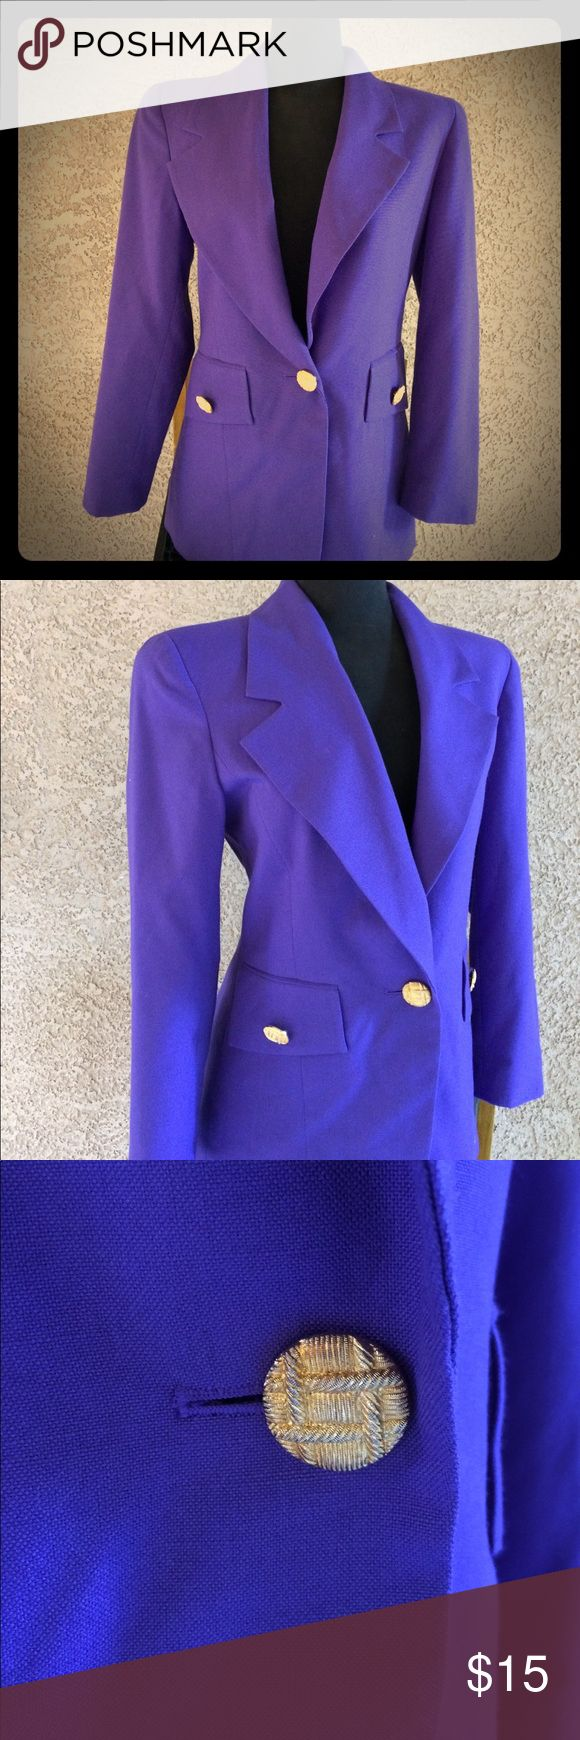 Ann Taylor fitted purple blazer gold buttons Sz 6. Good condition Ann Taylor size 6 women's fitted purple blazer coat. Ann Taylor Jackets & Coats Blazers